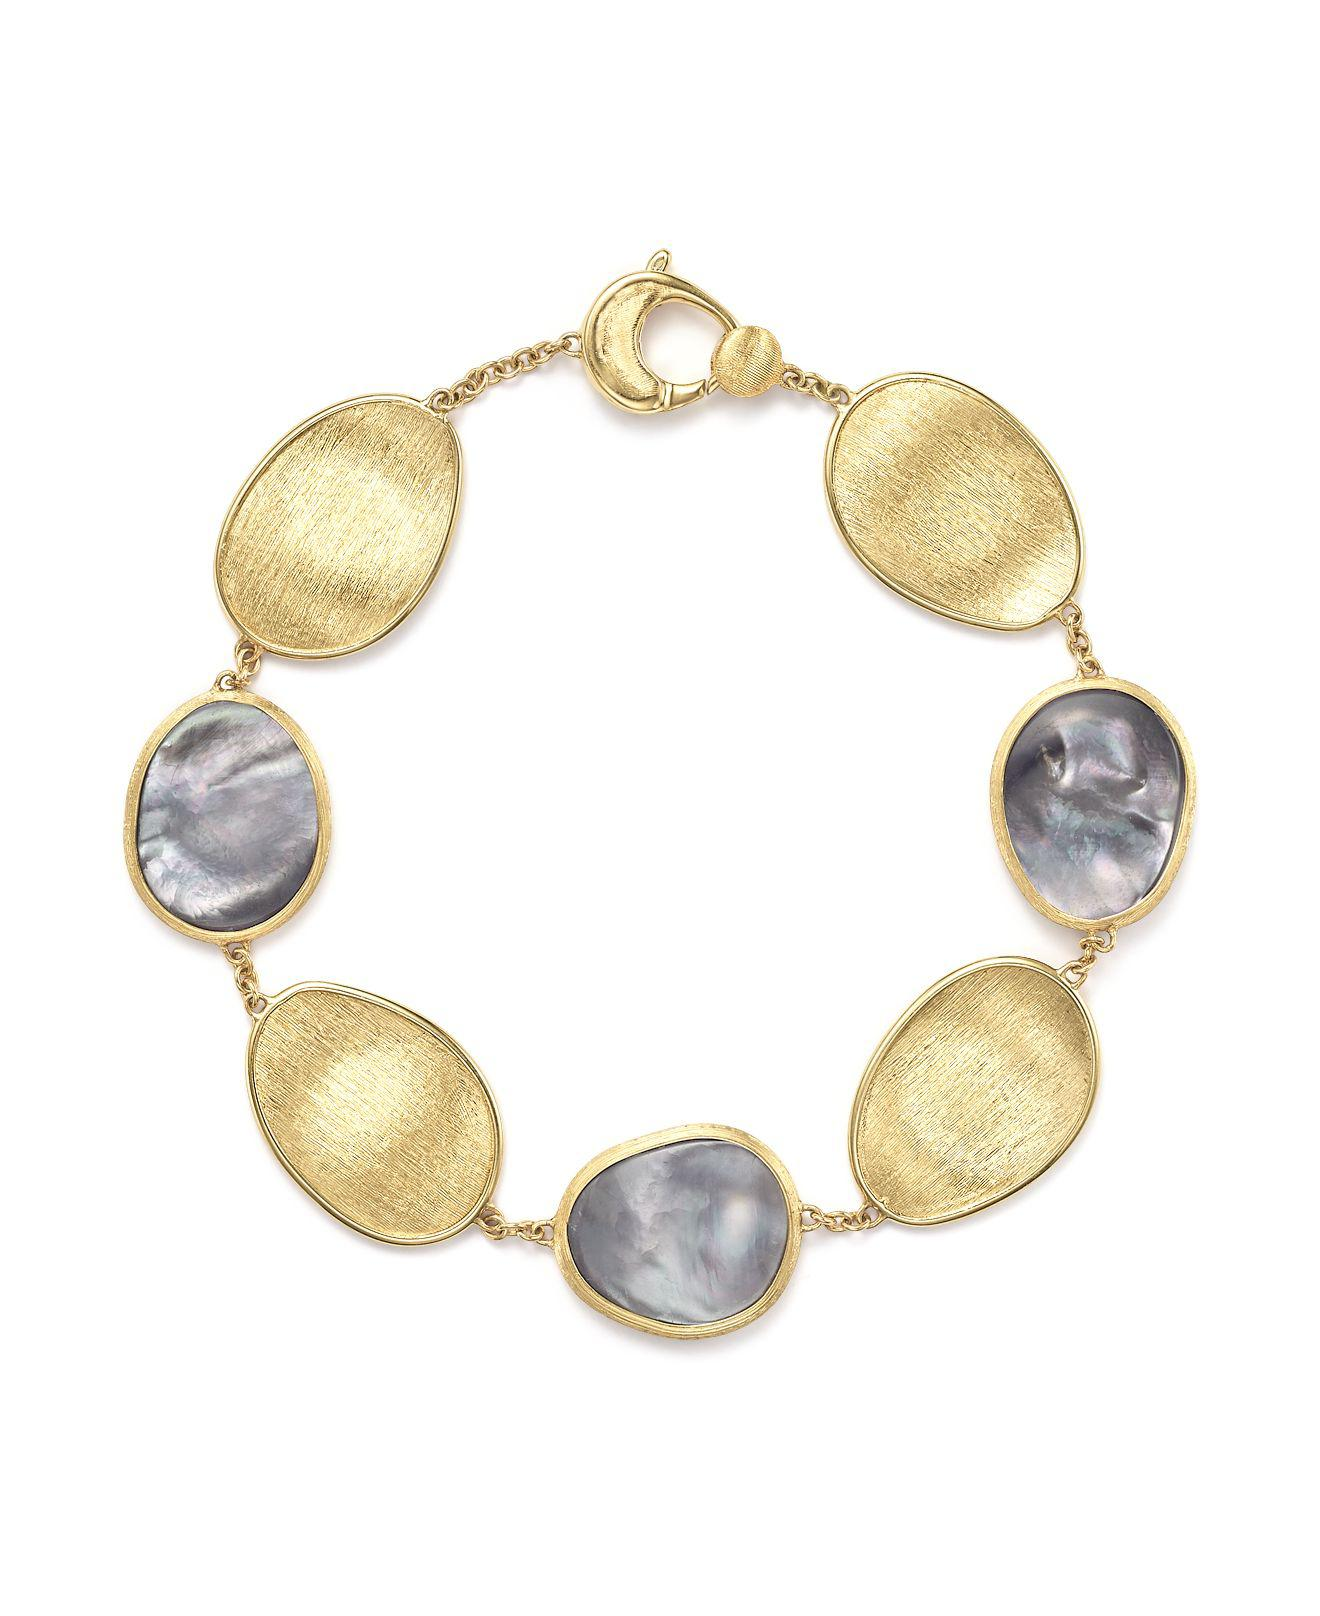 Marco Bicego Lunaria Mother-of-Pearl Station Bracelet N675x